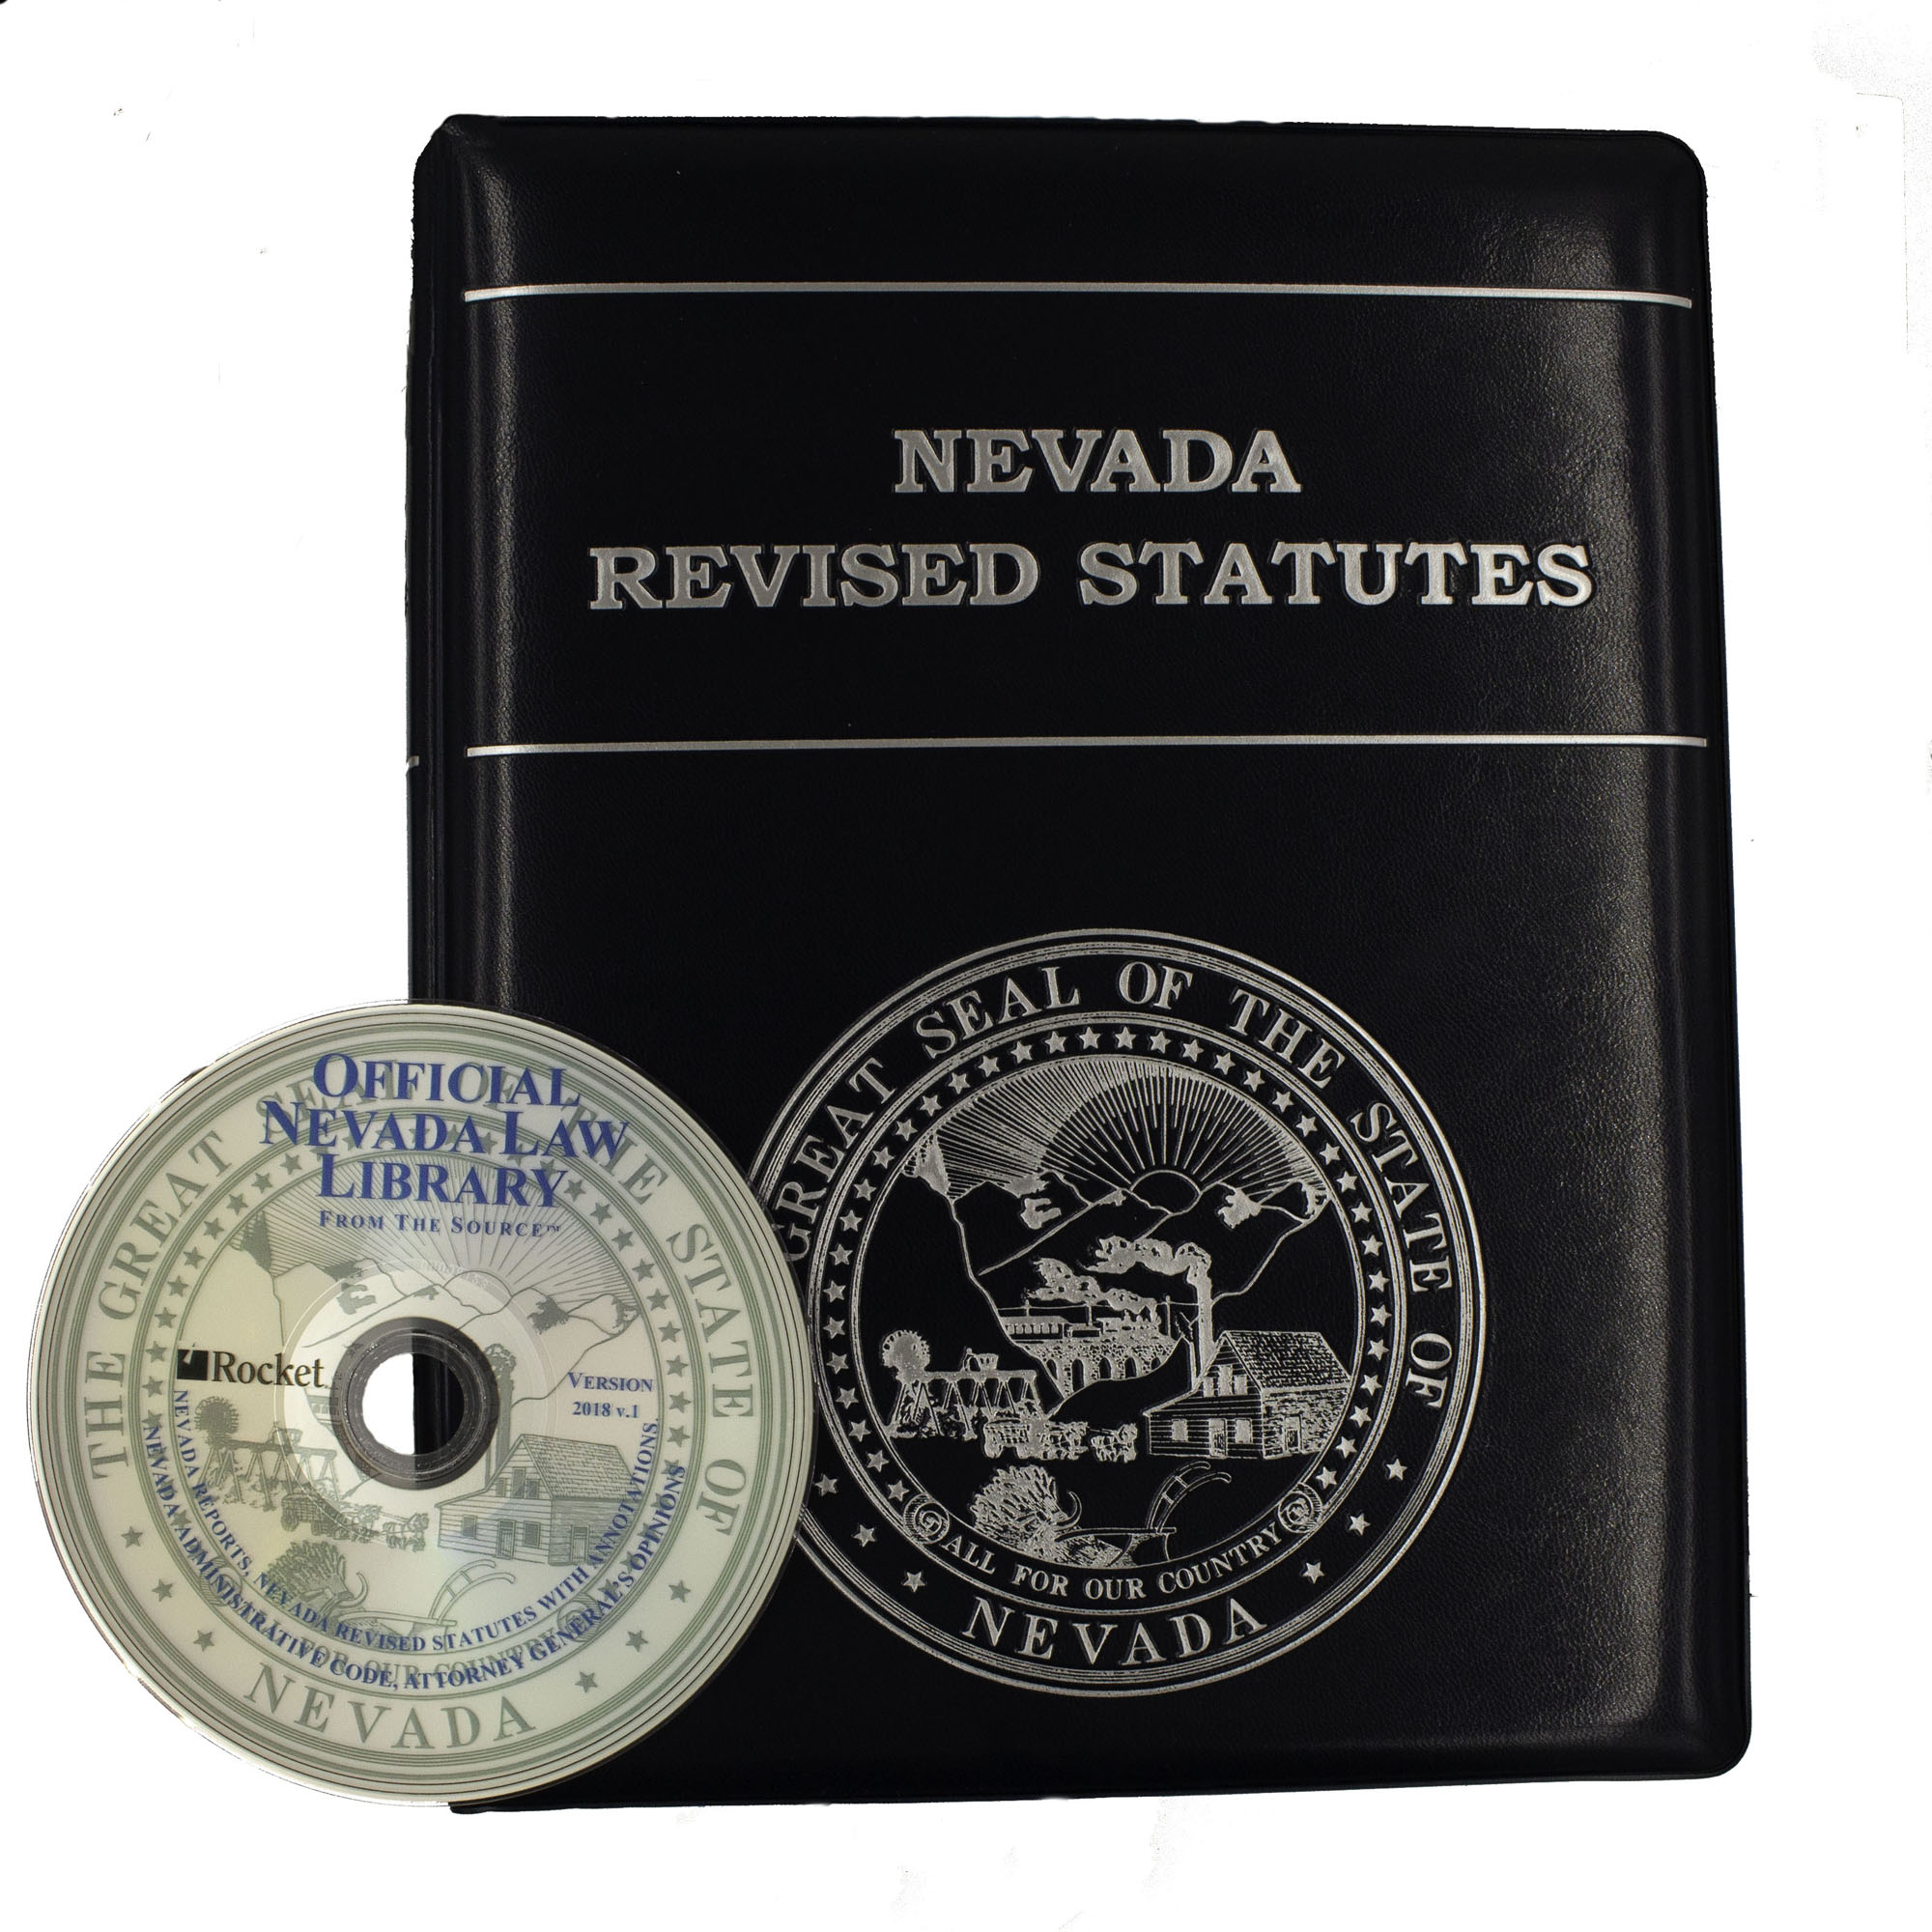 Nevada Revised Statutes >> Nrs Reprint Pages Only And Official Nevada Law Library On Disc